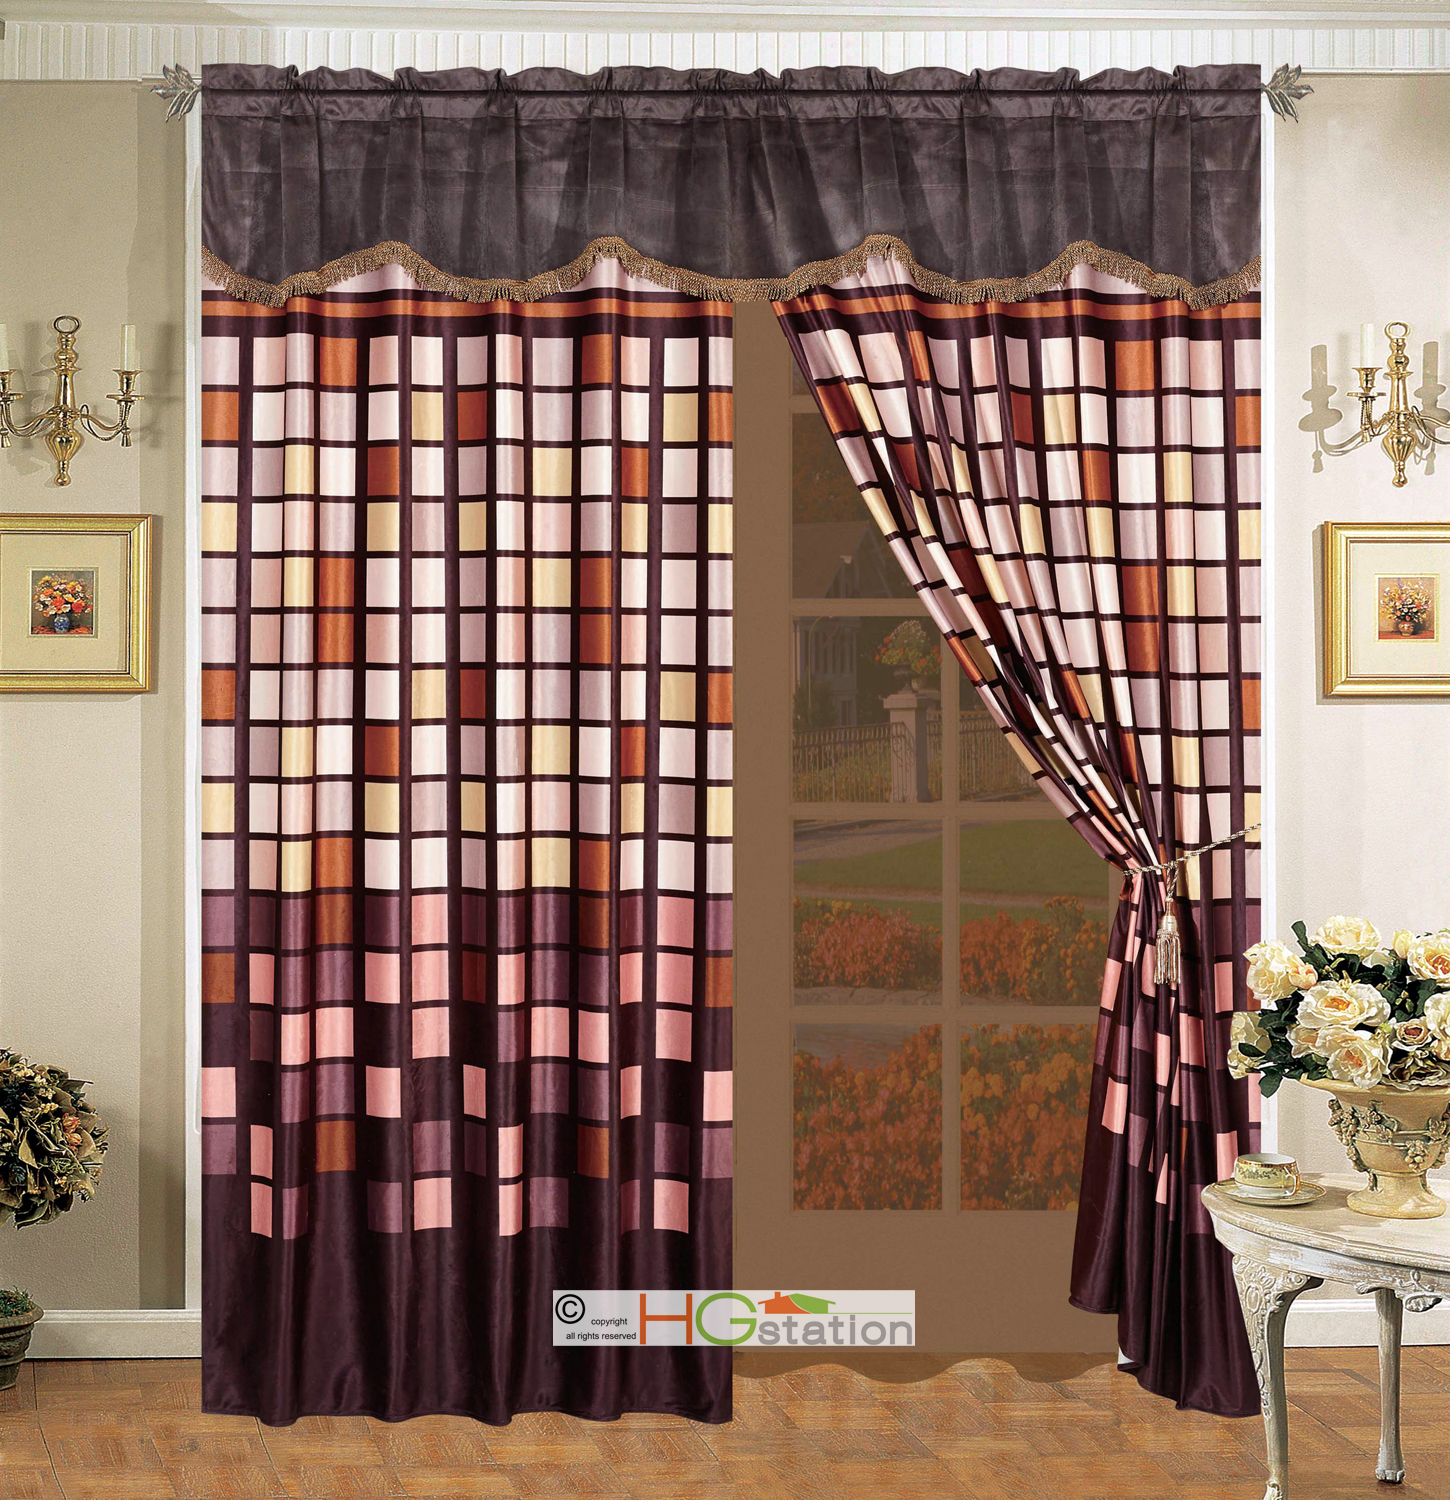 4 Square Patchwork Faux Fur Curtain Set Brown Taupe Tan